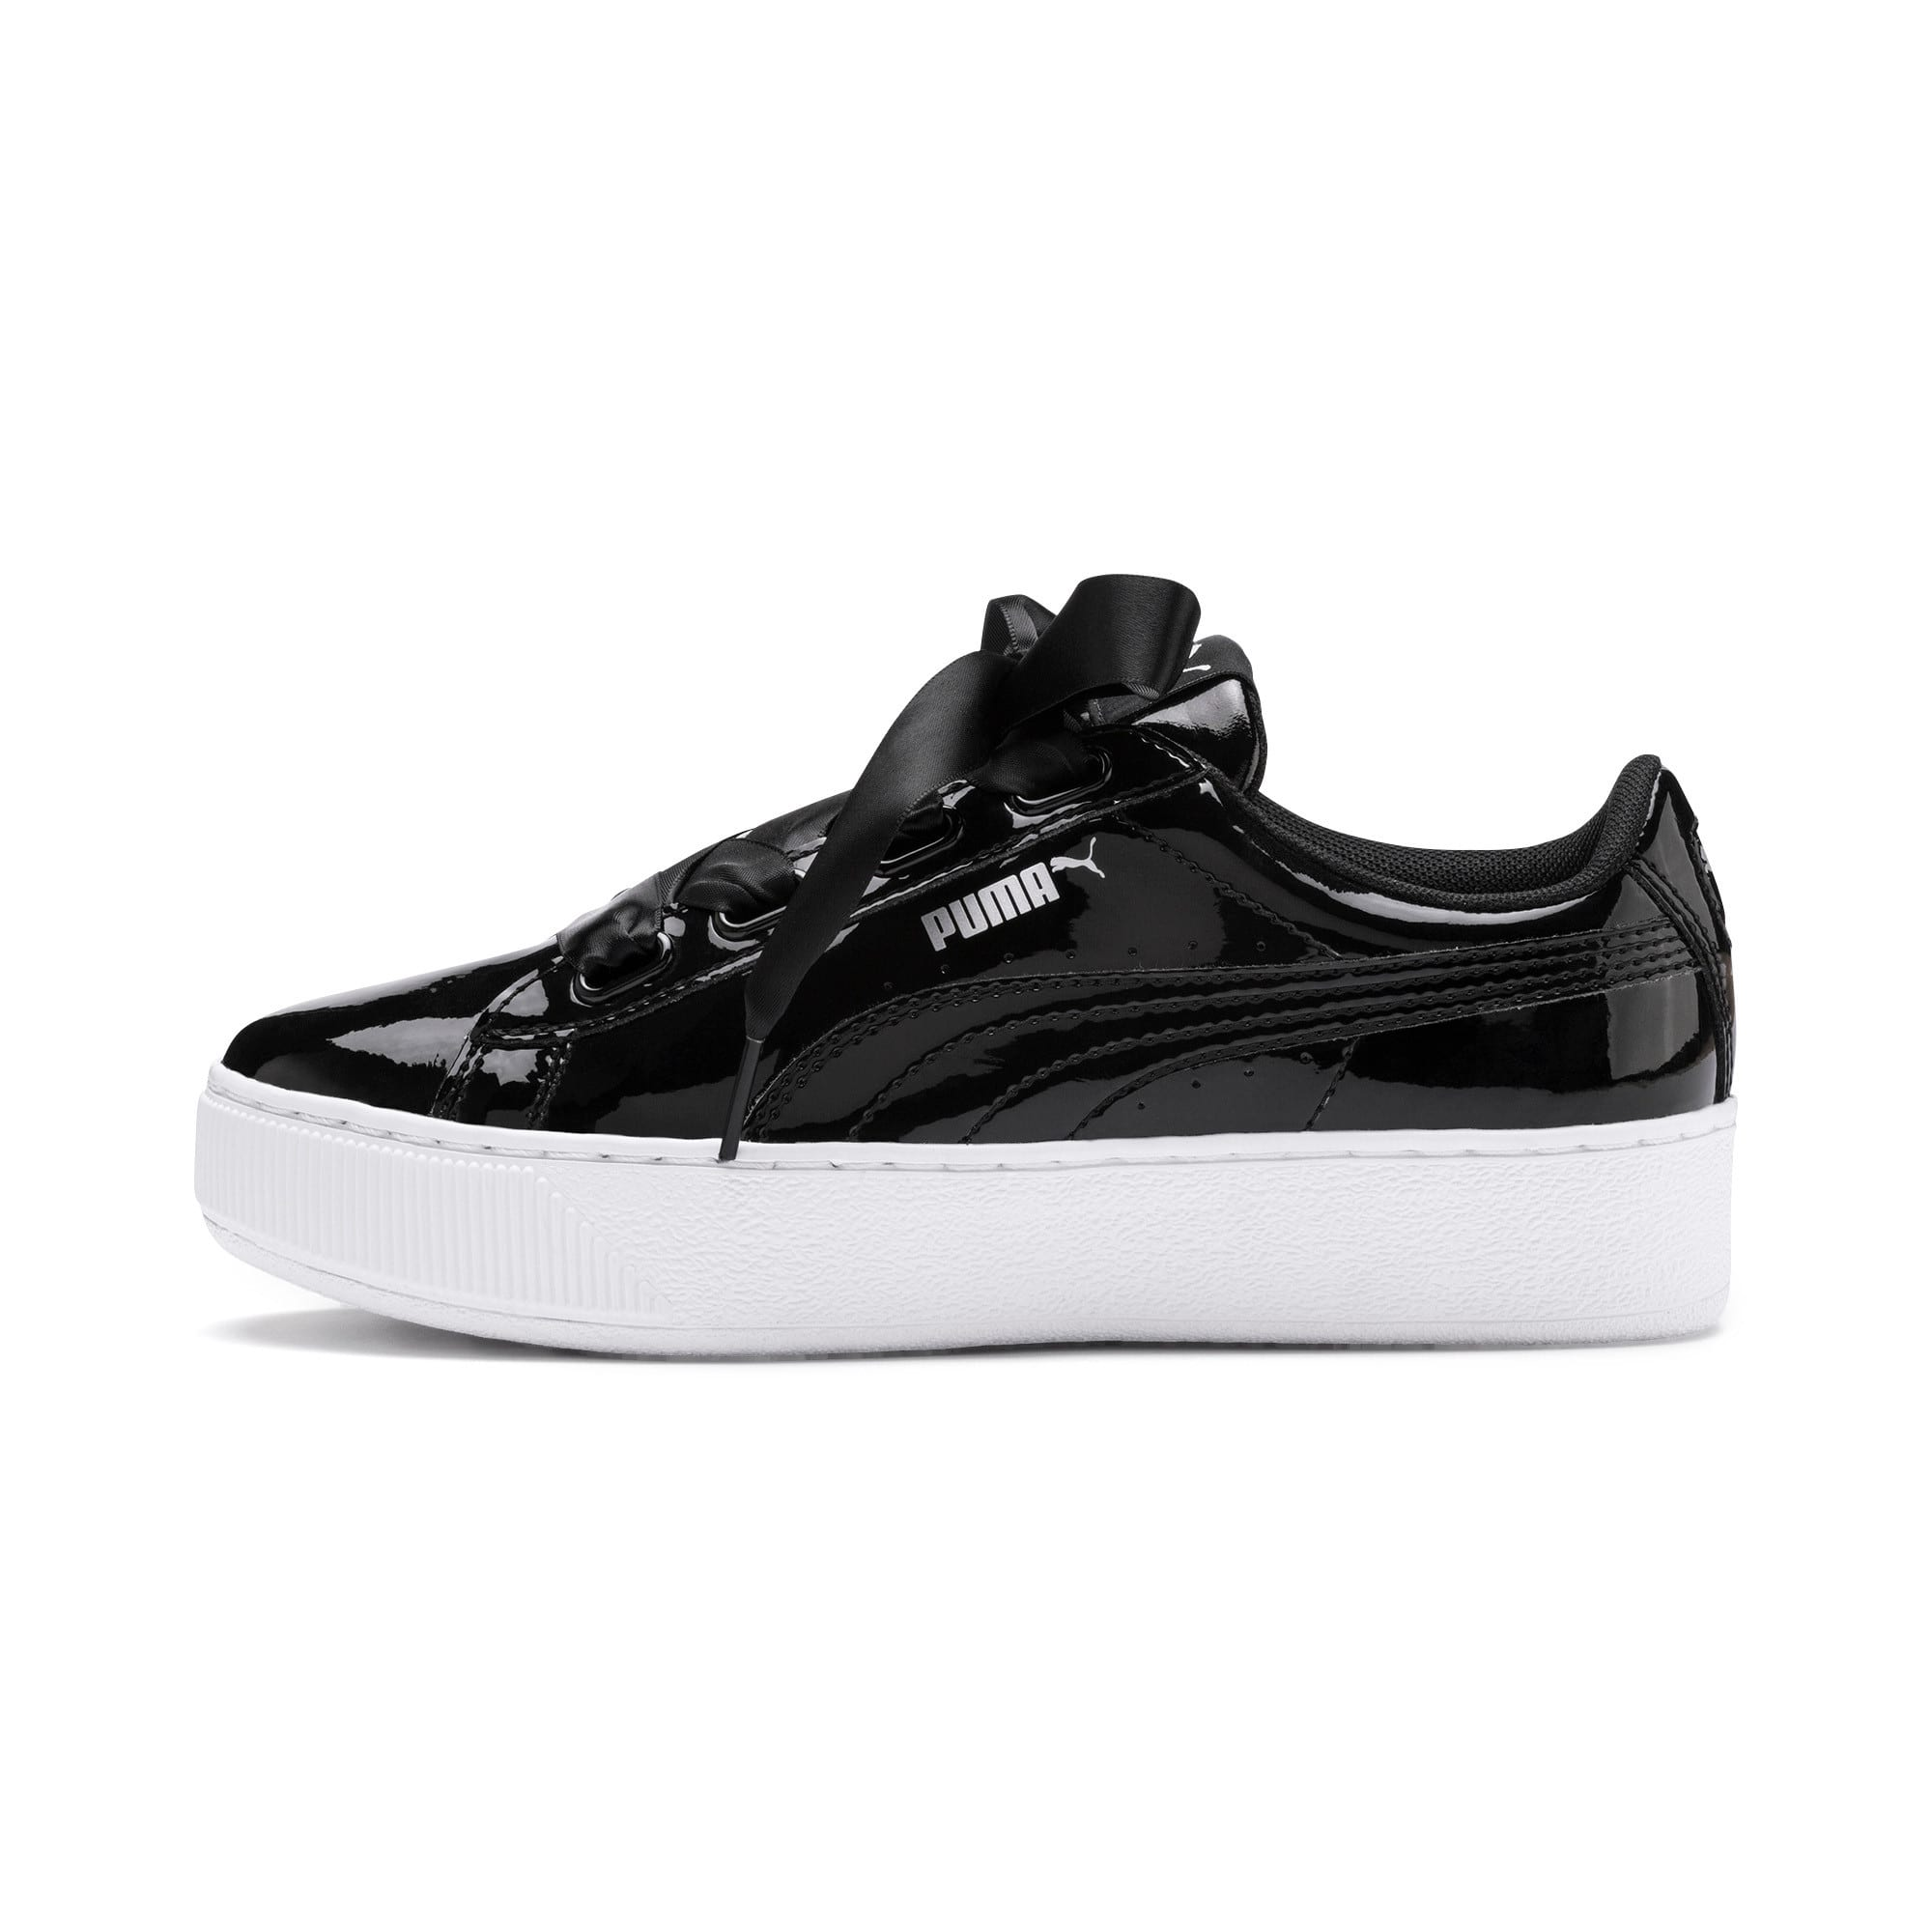 Thumbnail 1 of Vikky Platform Ribbon Patent Girls' Trainers, Puma Black-Puma Black, medium